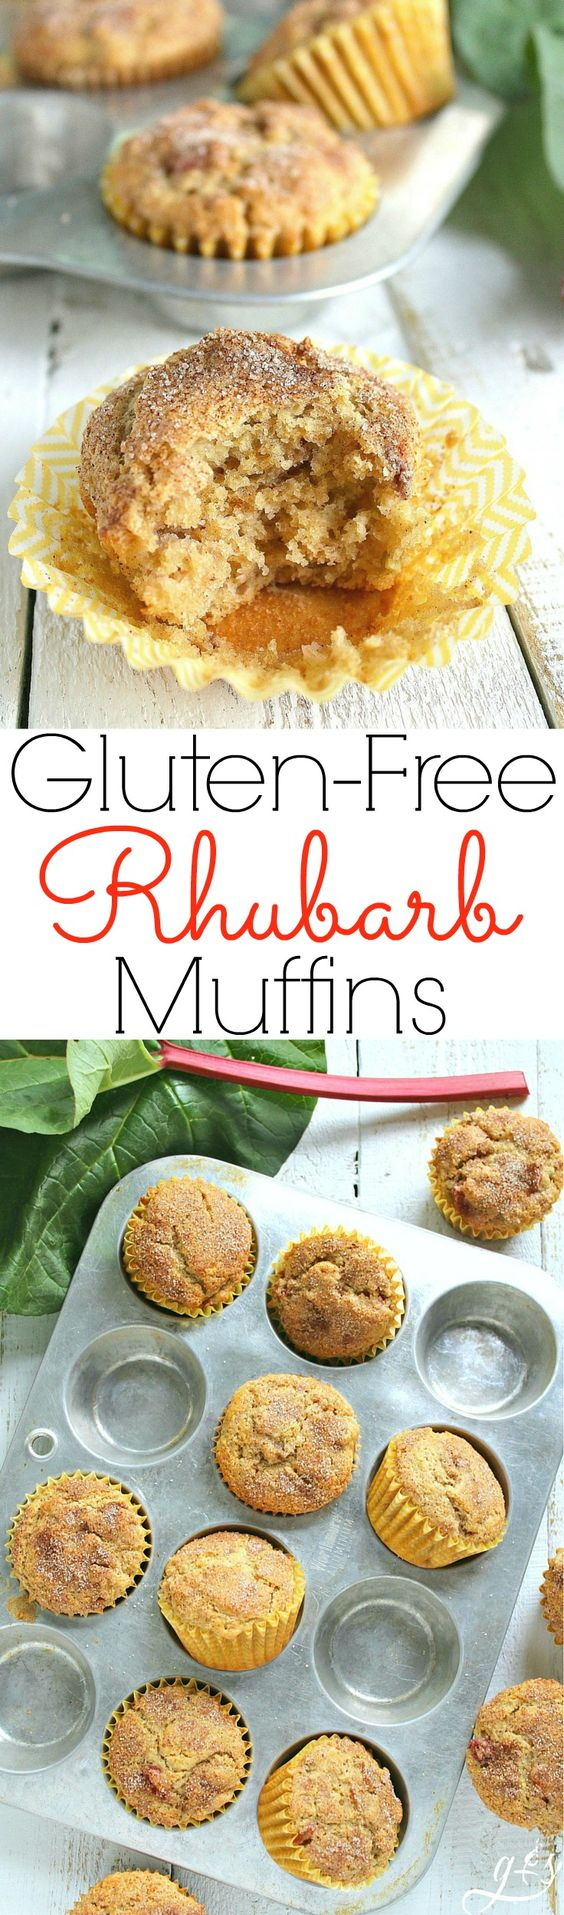 The Best Gluten Free Sour Cream Rhubarb Muffins This Easy And Healthy Breakfast Or Brunch Recipe Use Rhubarb Muffins Rhubarb Recipes Rhubarb Recipes Muffins